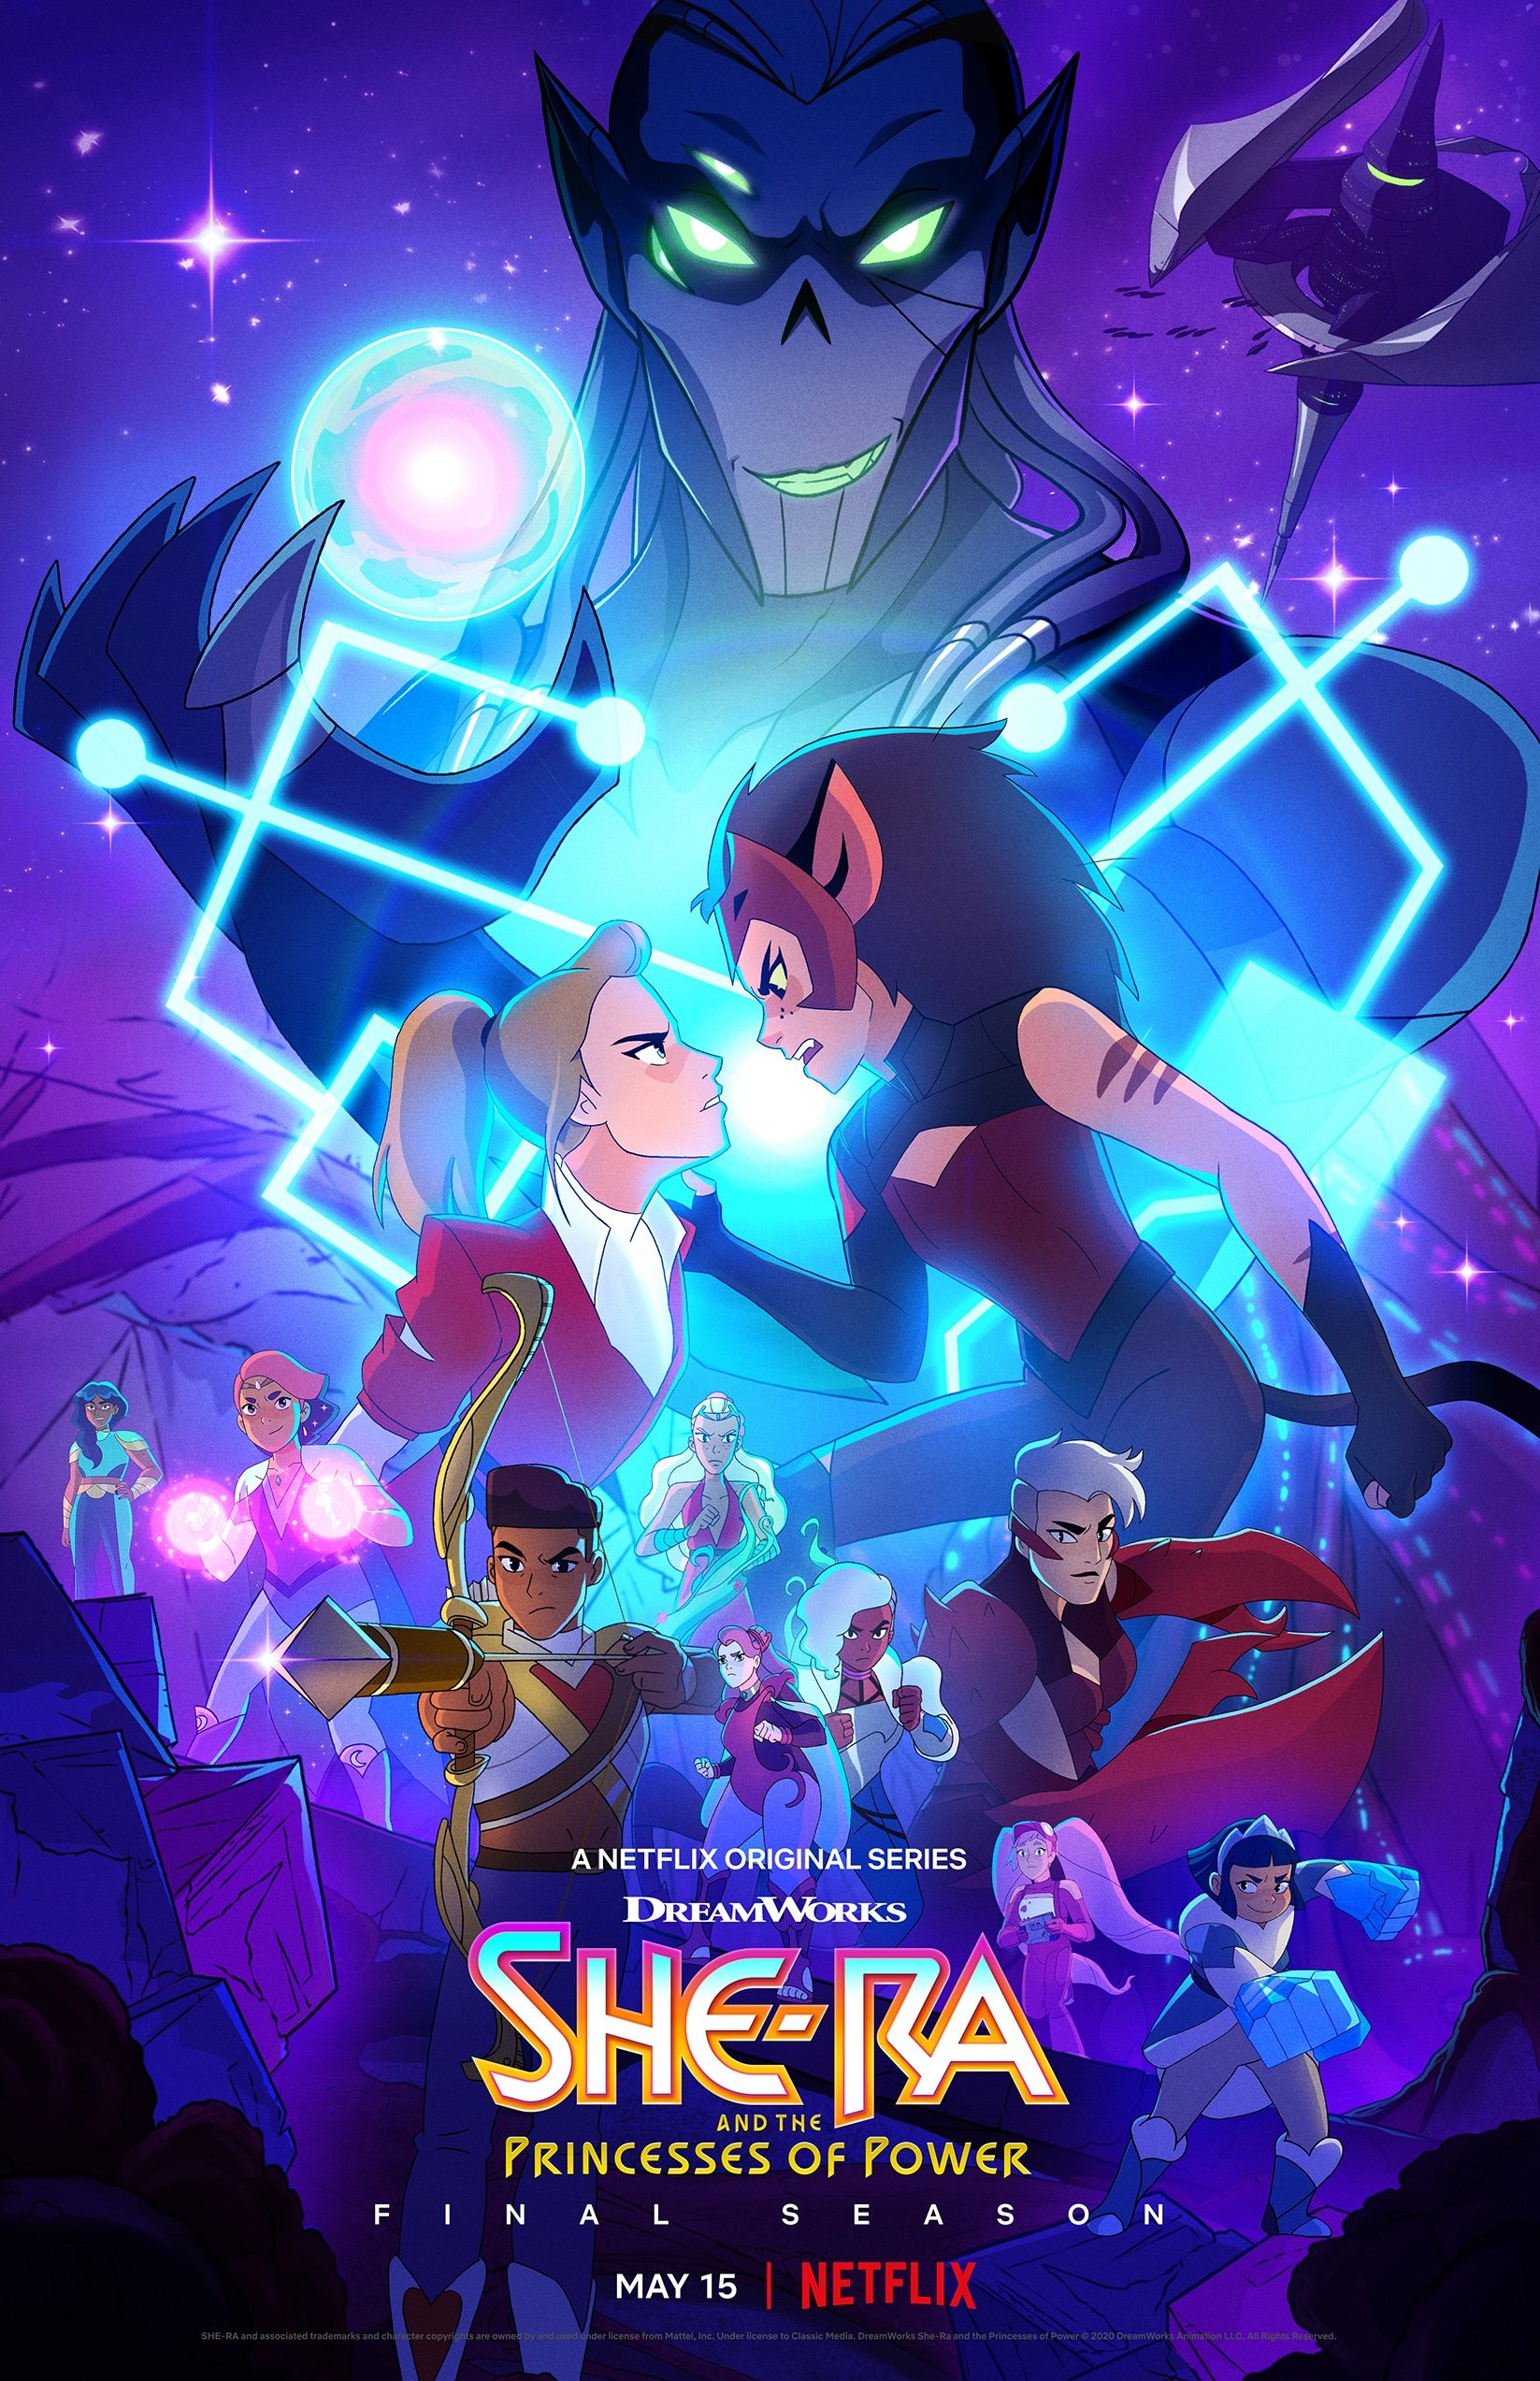 She Ra Season 5 Poster. In season 5, the ruthless Horde Prime has arrived and without the Sword of Protection and She-Ra, the Rebellion are facing their toughest challenge yet. Available on Netflix May 8th, 2020.